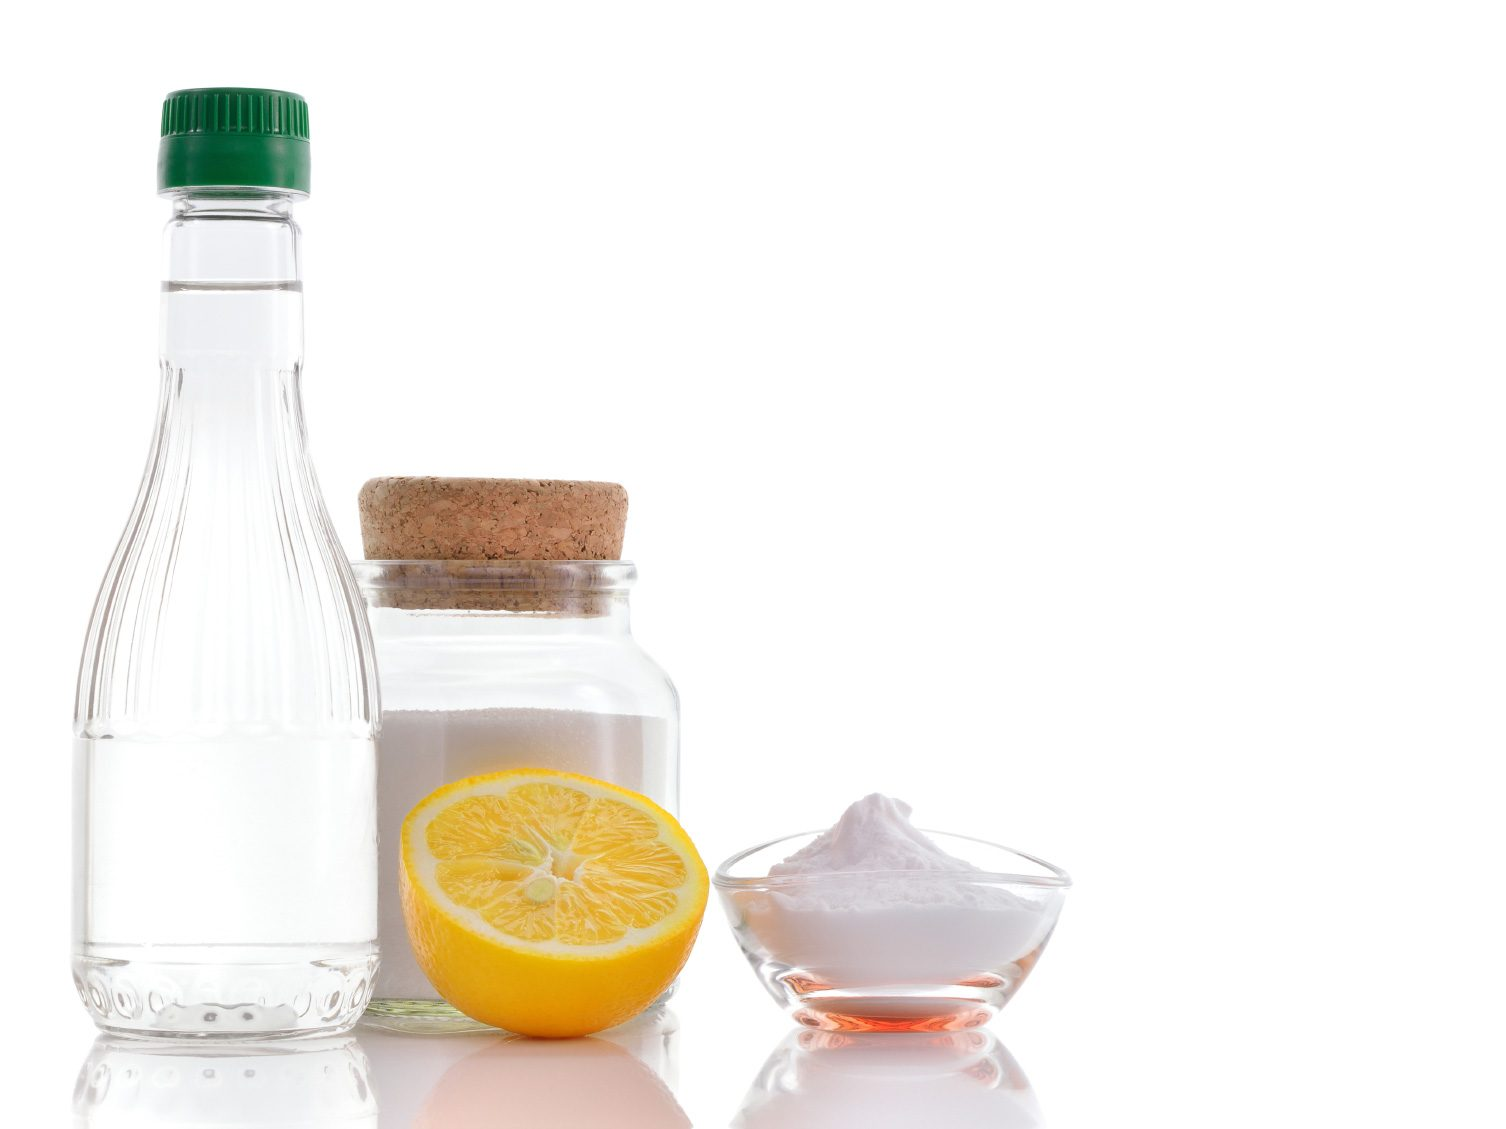 Try Vinegar and Water for Your Bathroom